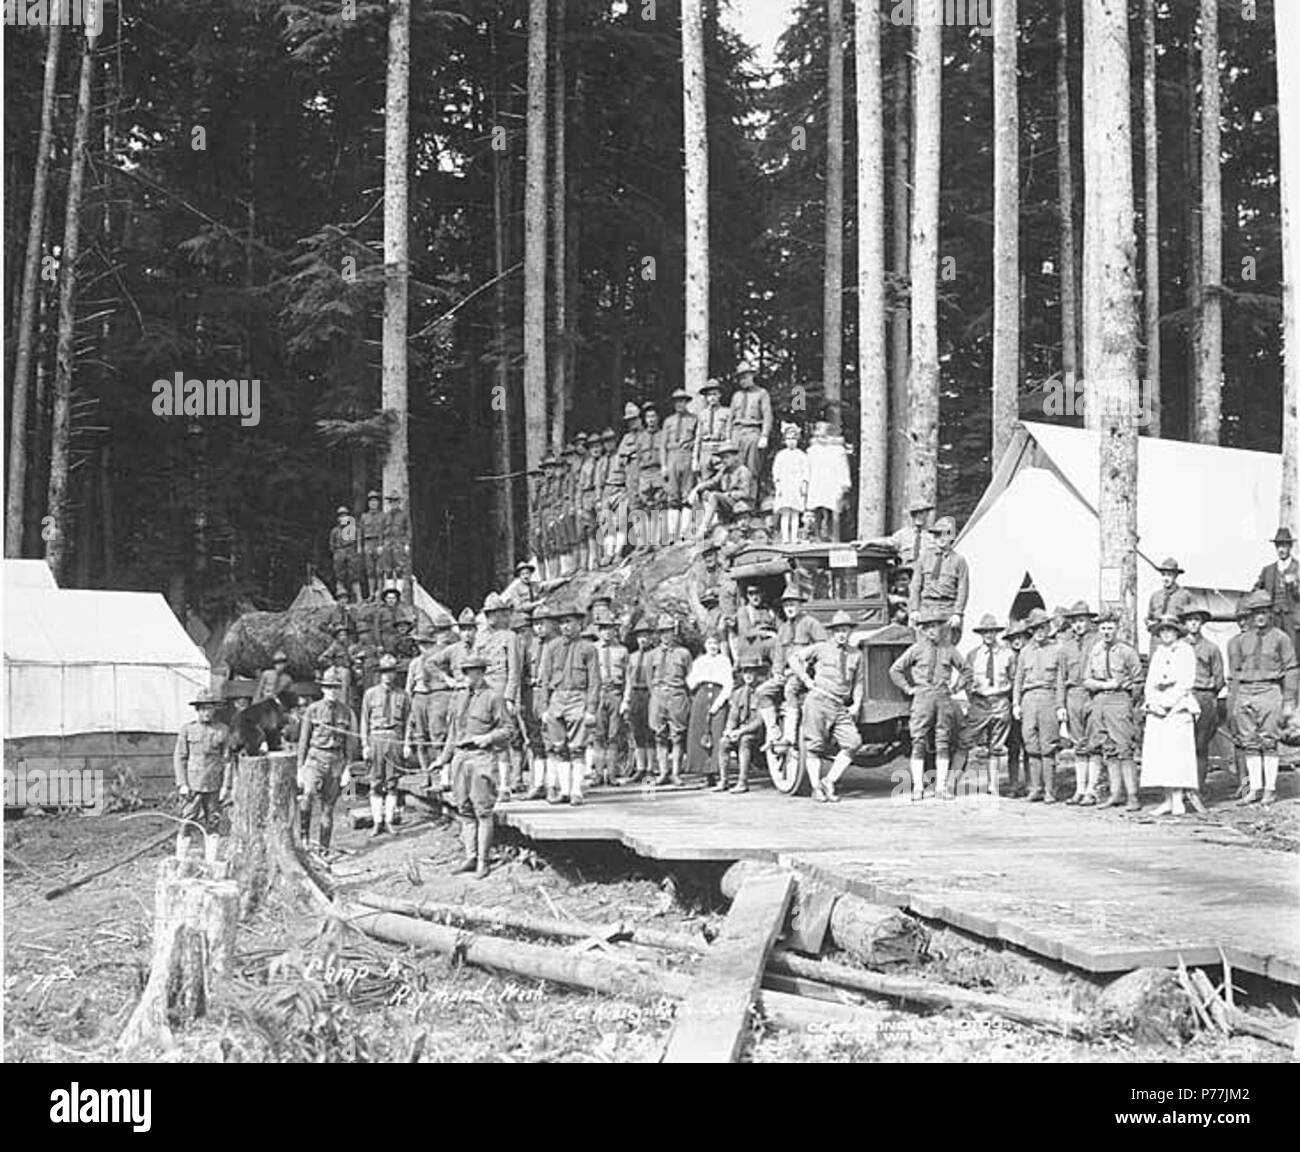 Central Pacific Black And White Stock Photos Amp Images Alamy